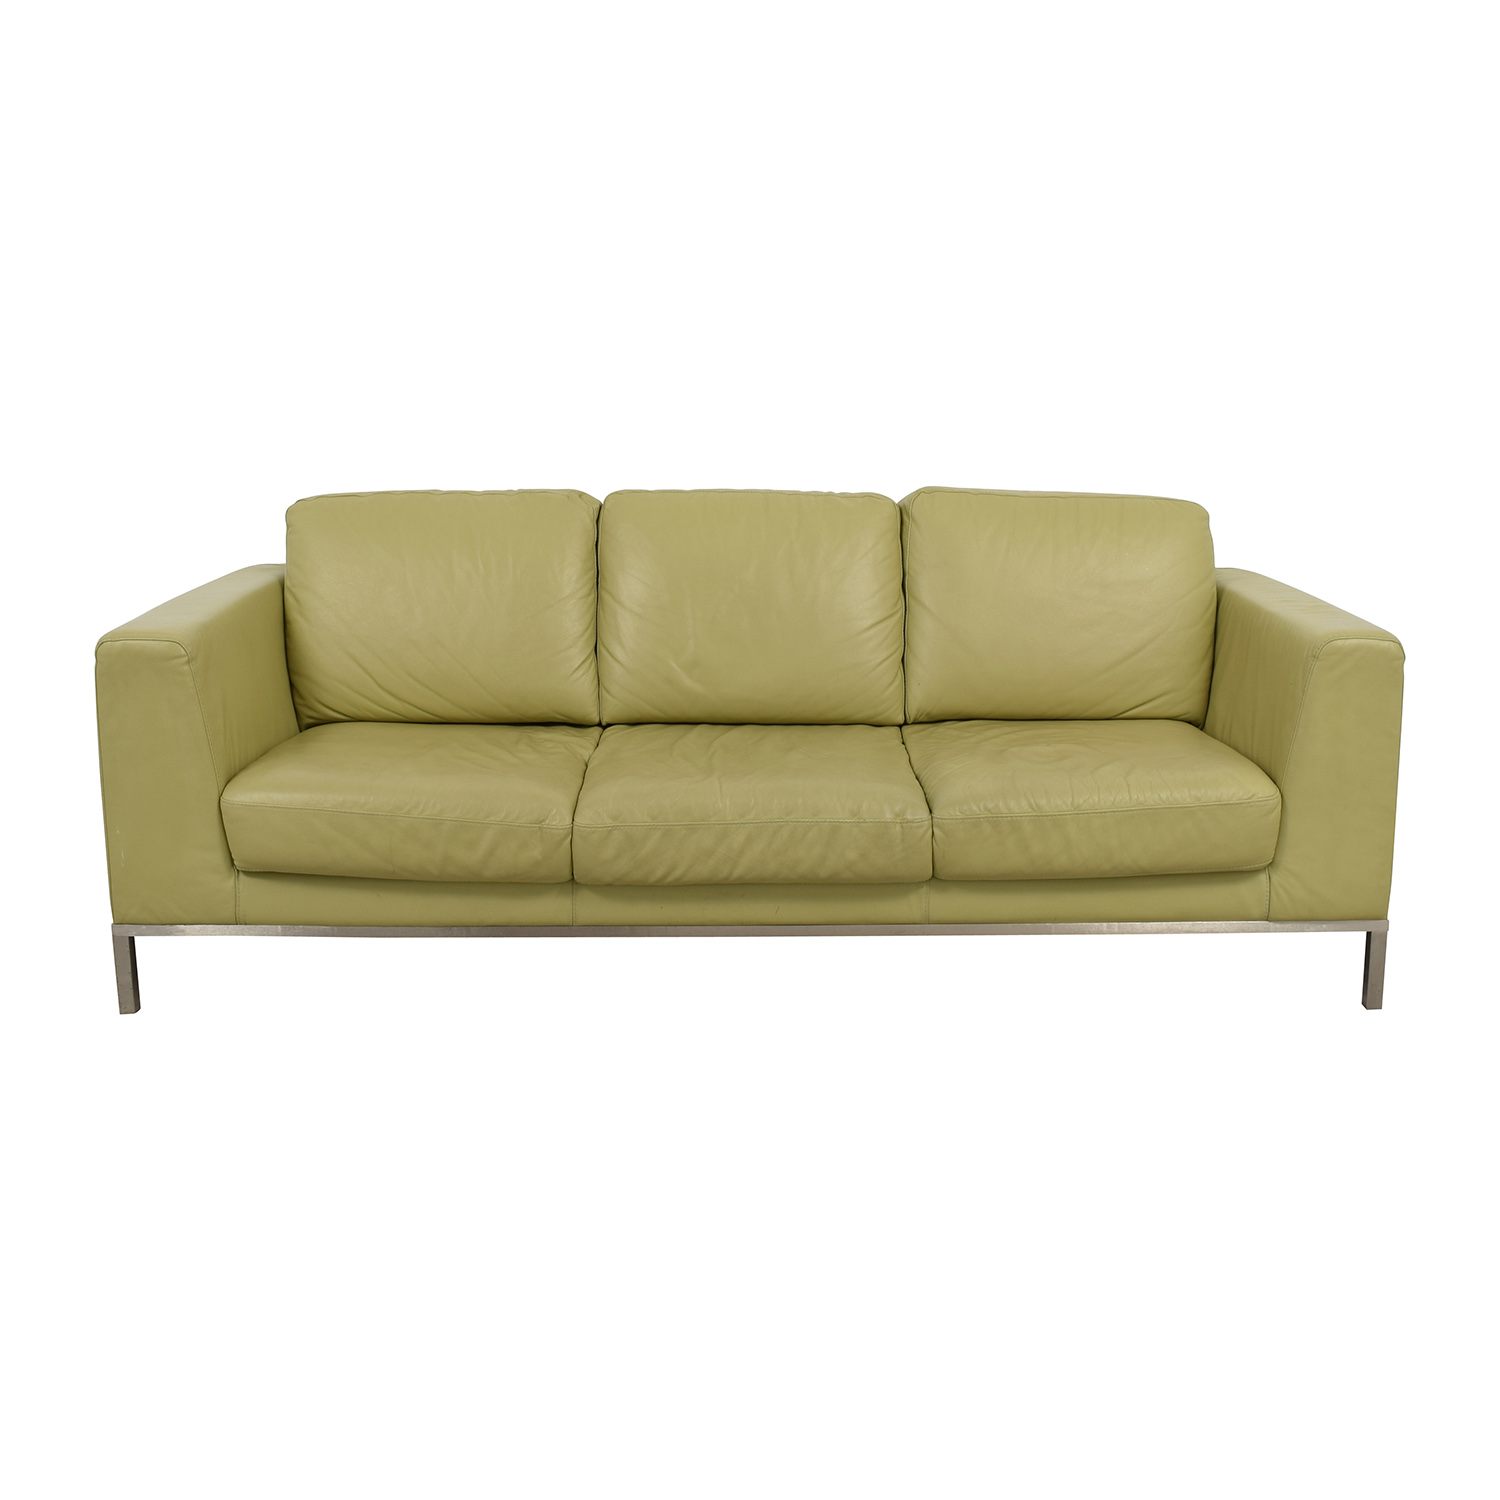 26% OFF - Natuzzi Italsofa Green Leather Sofa / Sofas